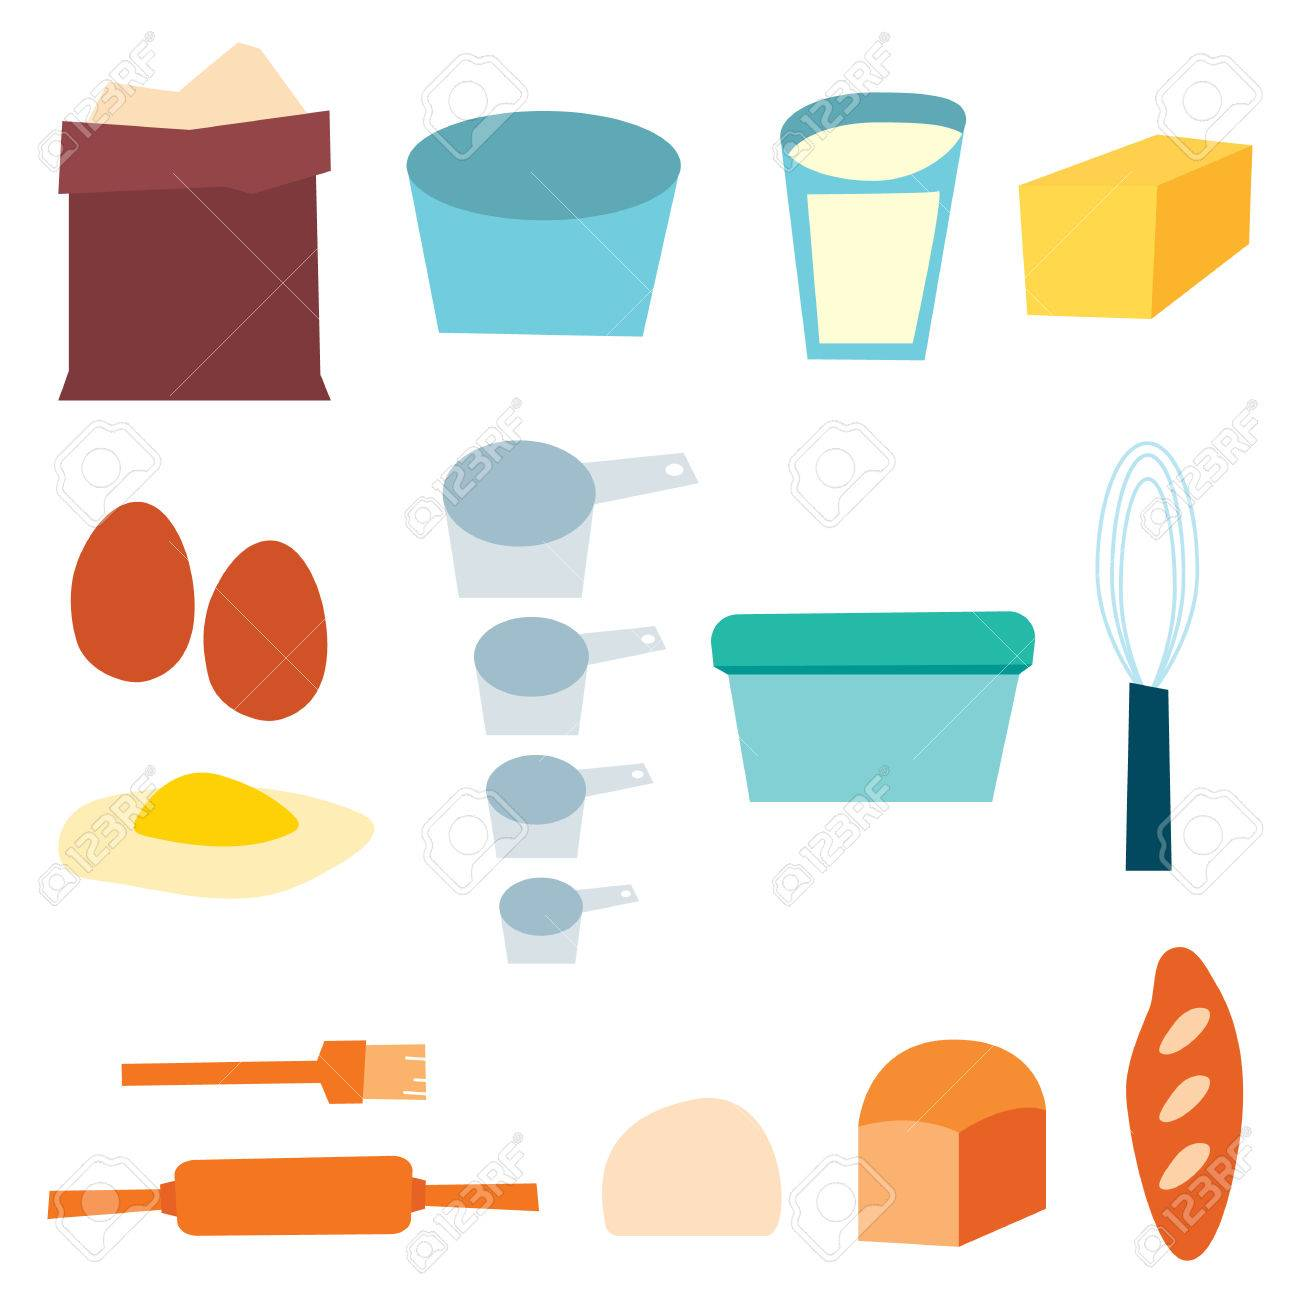 Bread Baking Supplies Vector Illustration Stock